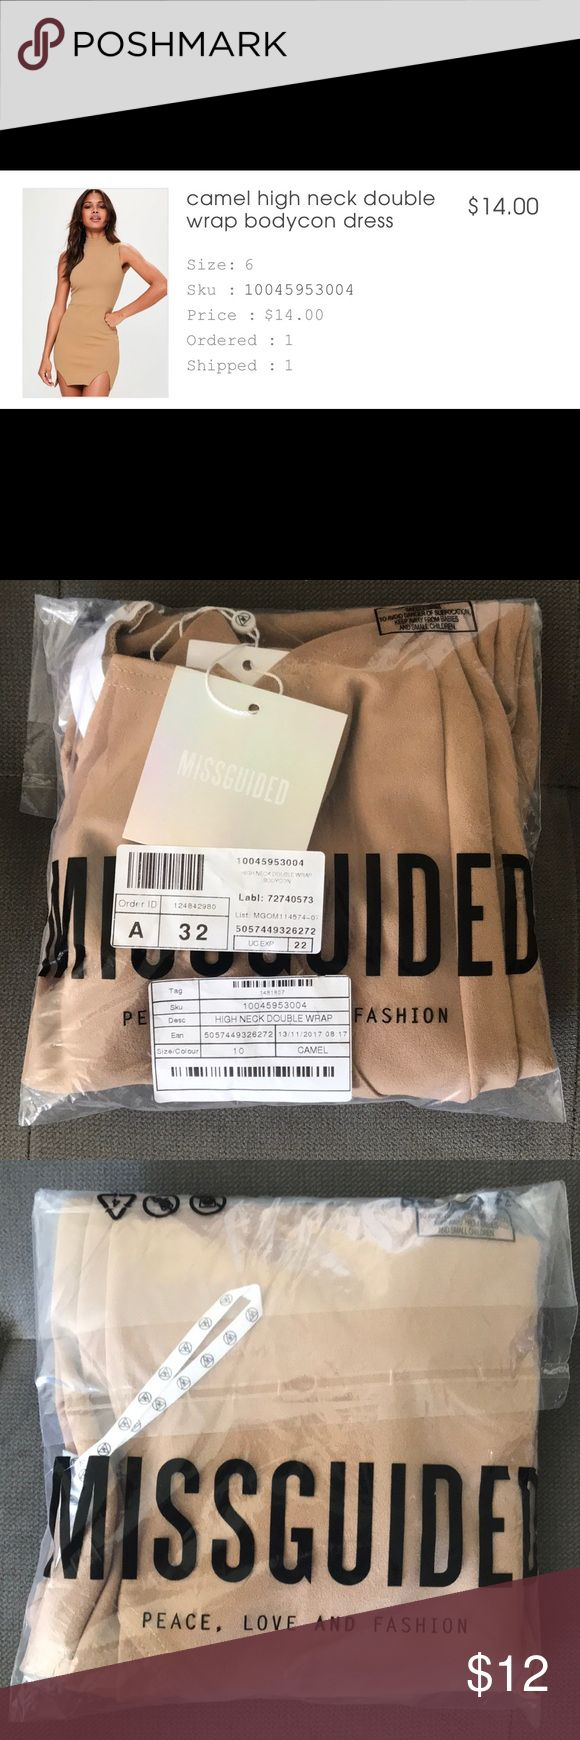 MissGuided dress high neck (double wrap) Size 10 Size 10 color camel Missguided Dresses Mini